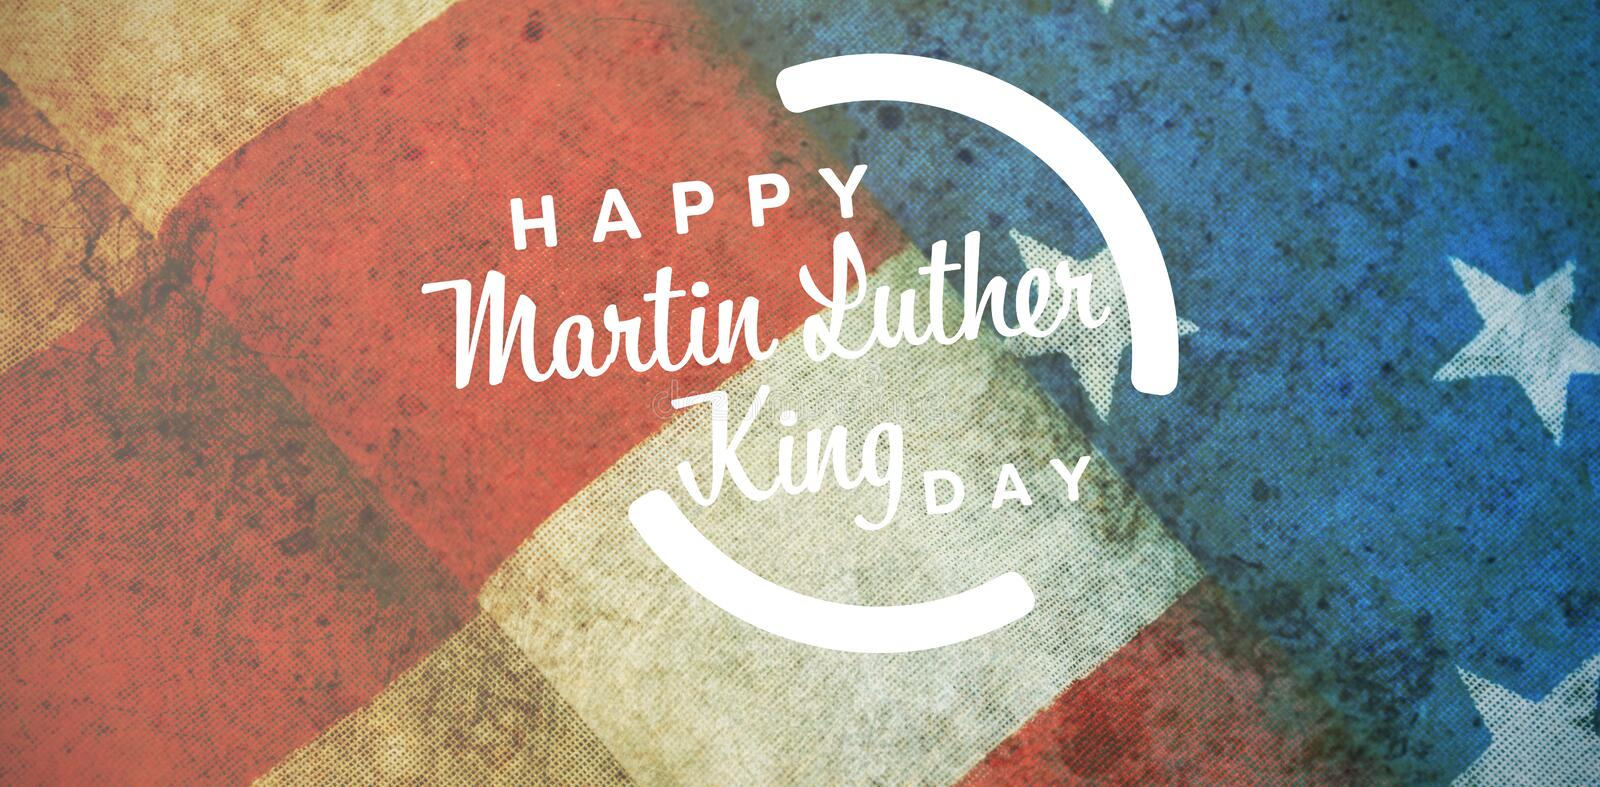 Composite image of happy martin luther king day. Happy Martin Luther King day against close-up of folded american flag royalty free illustration